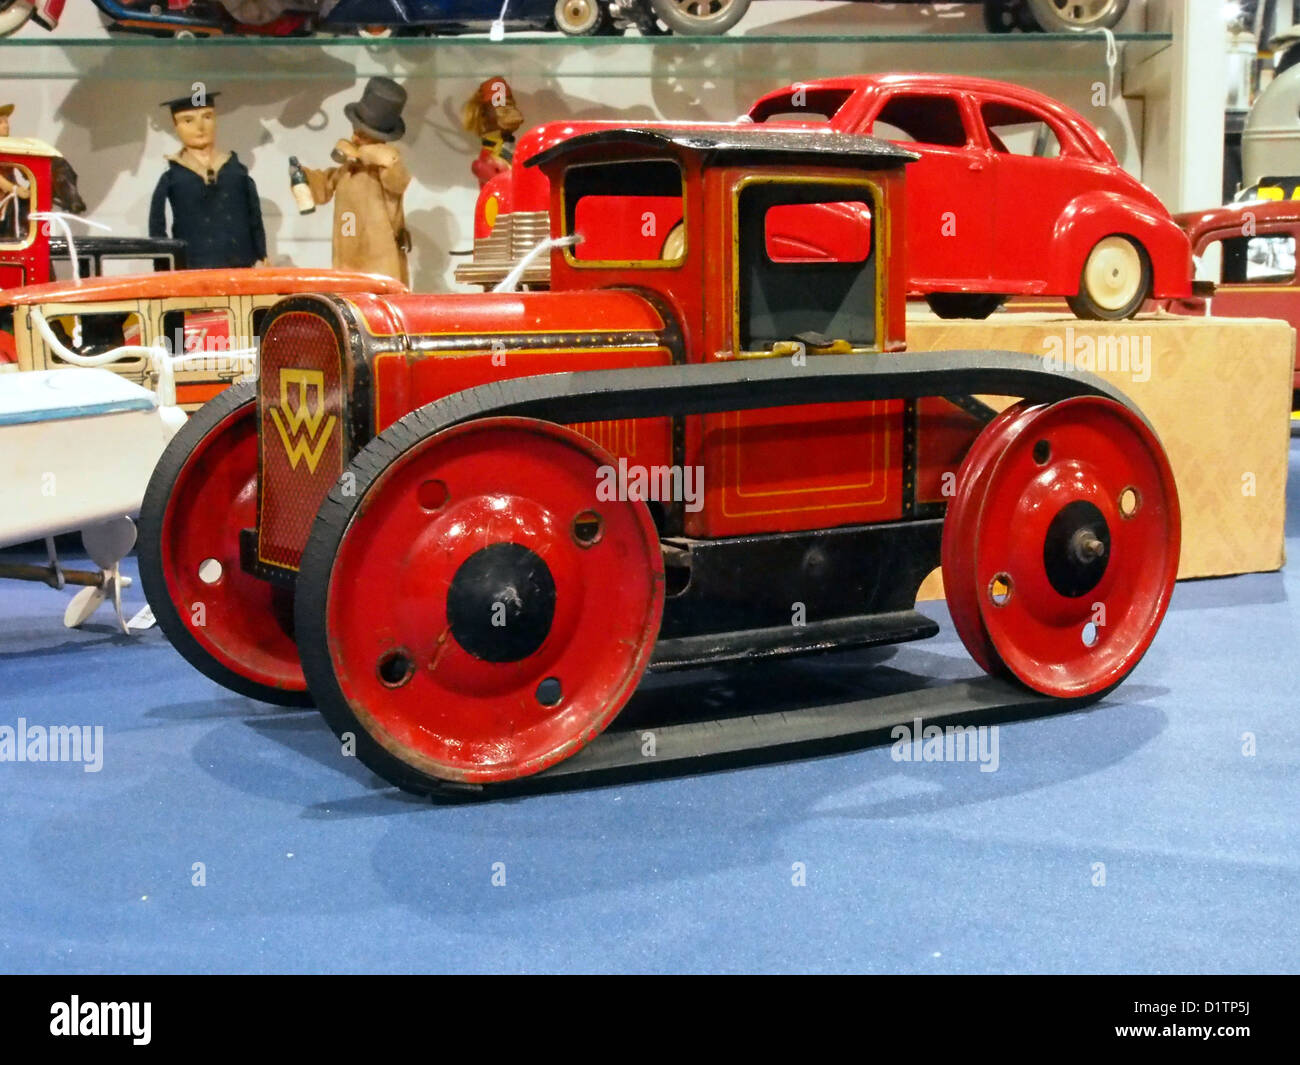 Litho tin toy BW tractor - Stock Image